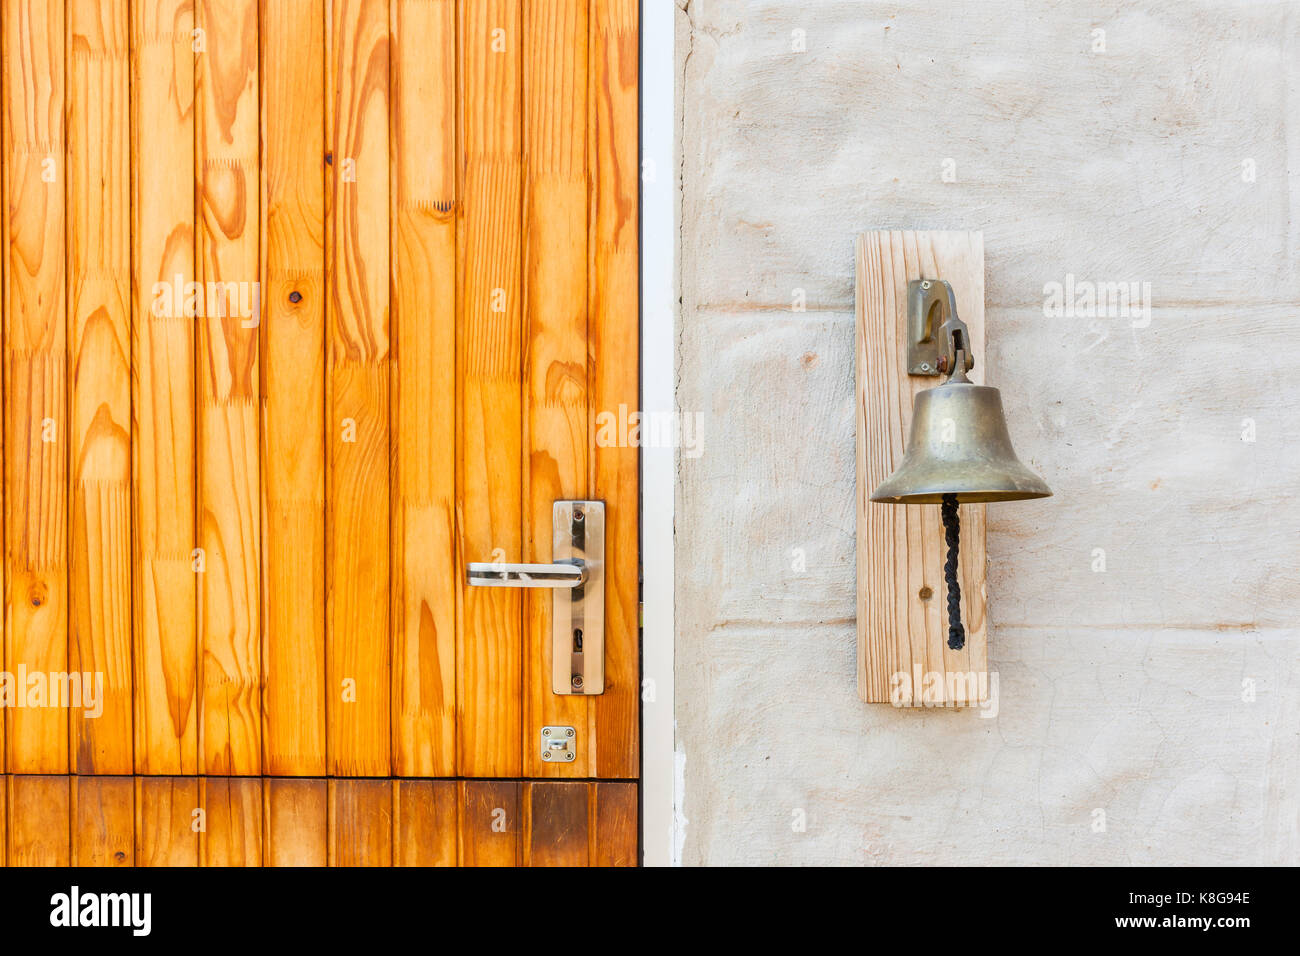 Brass bell attached outside next to house door for noise ringing communications notices or alarm rural camp farm Stock Photo